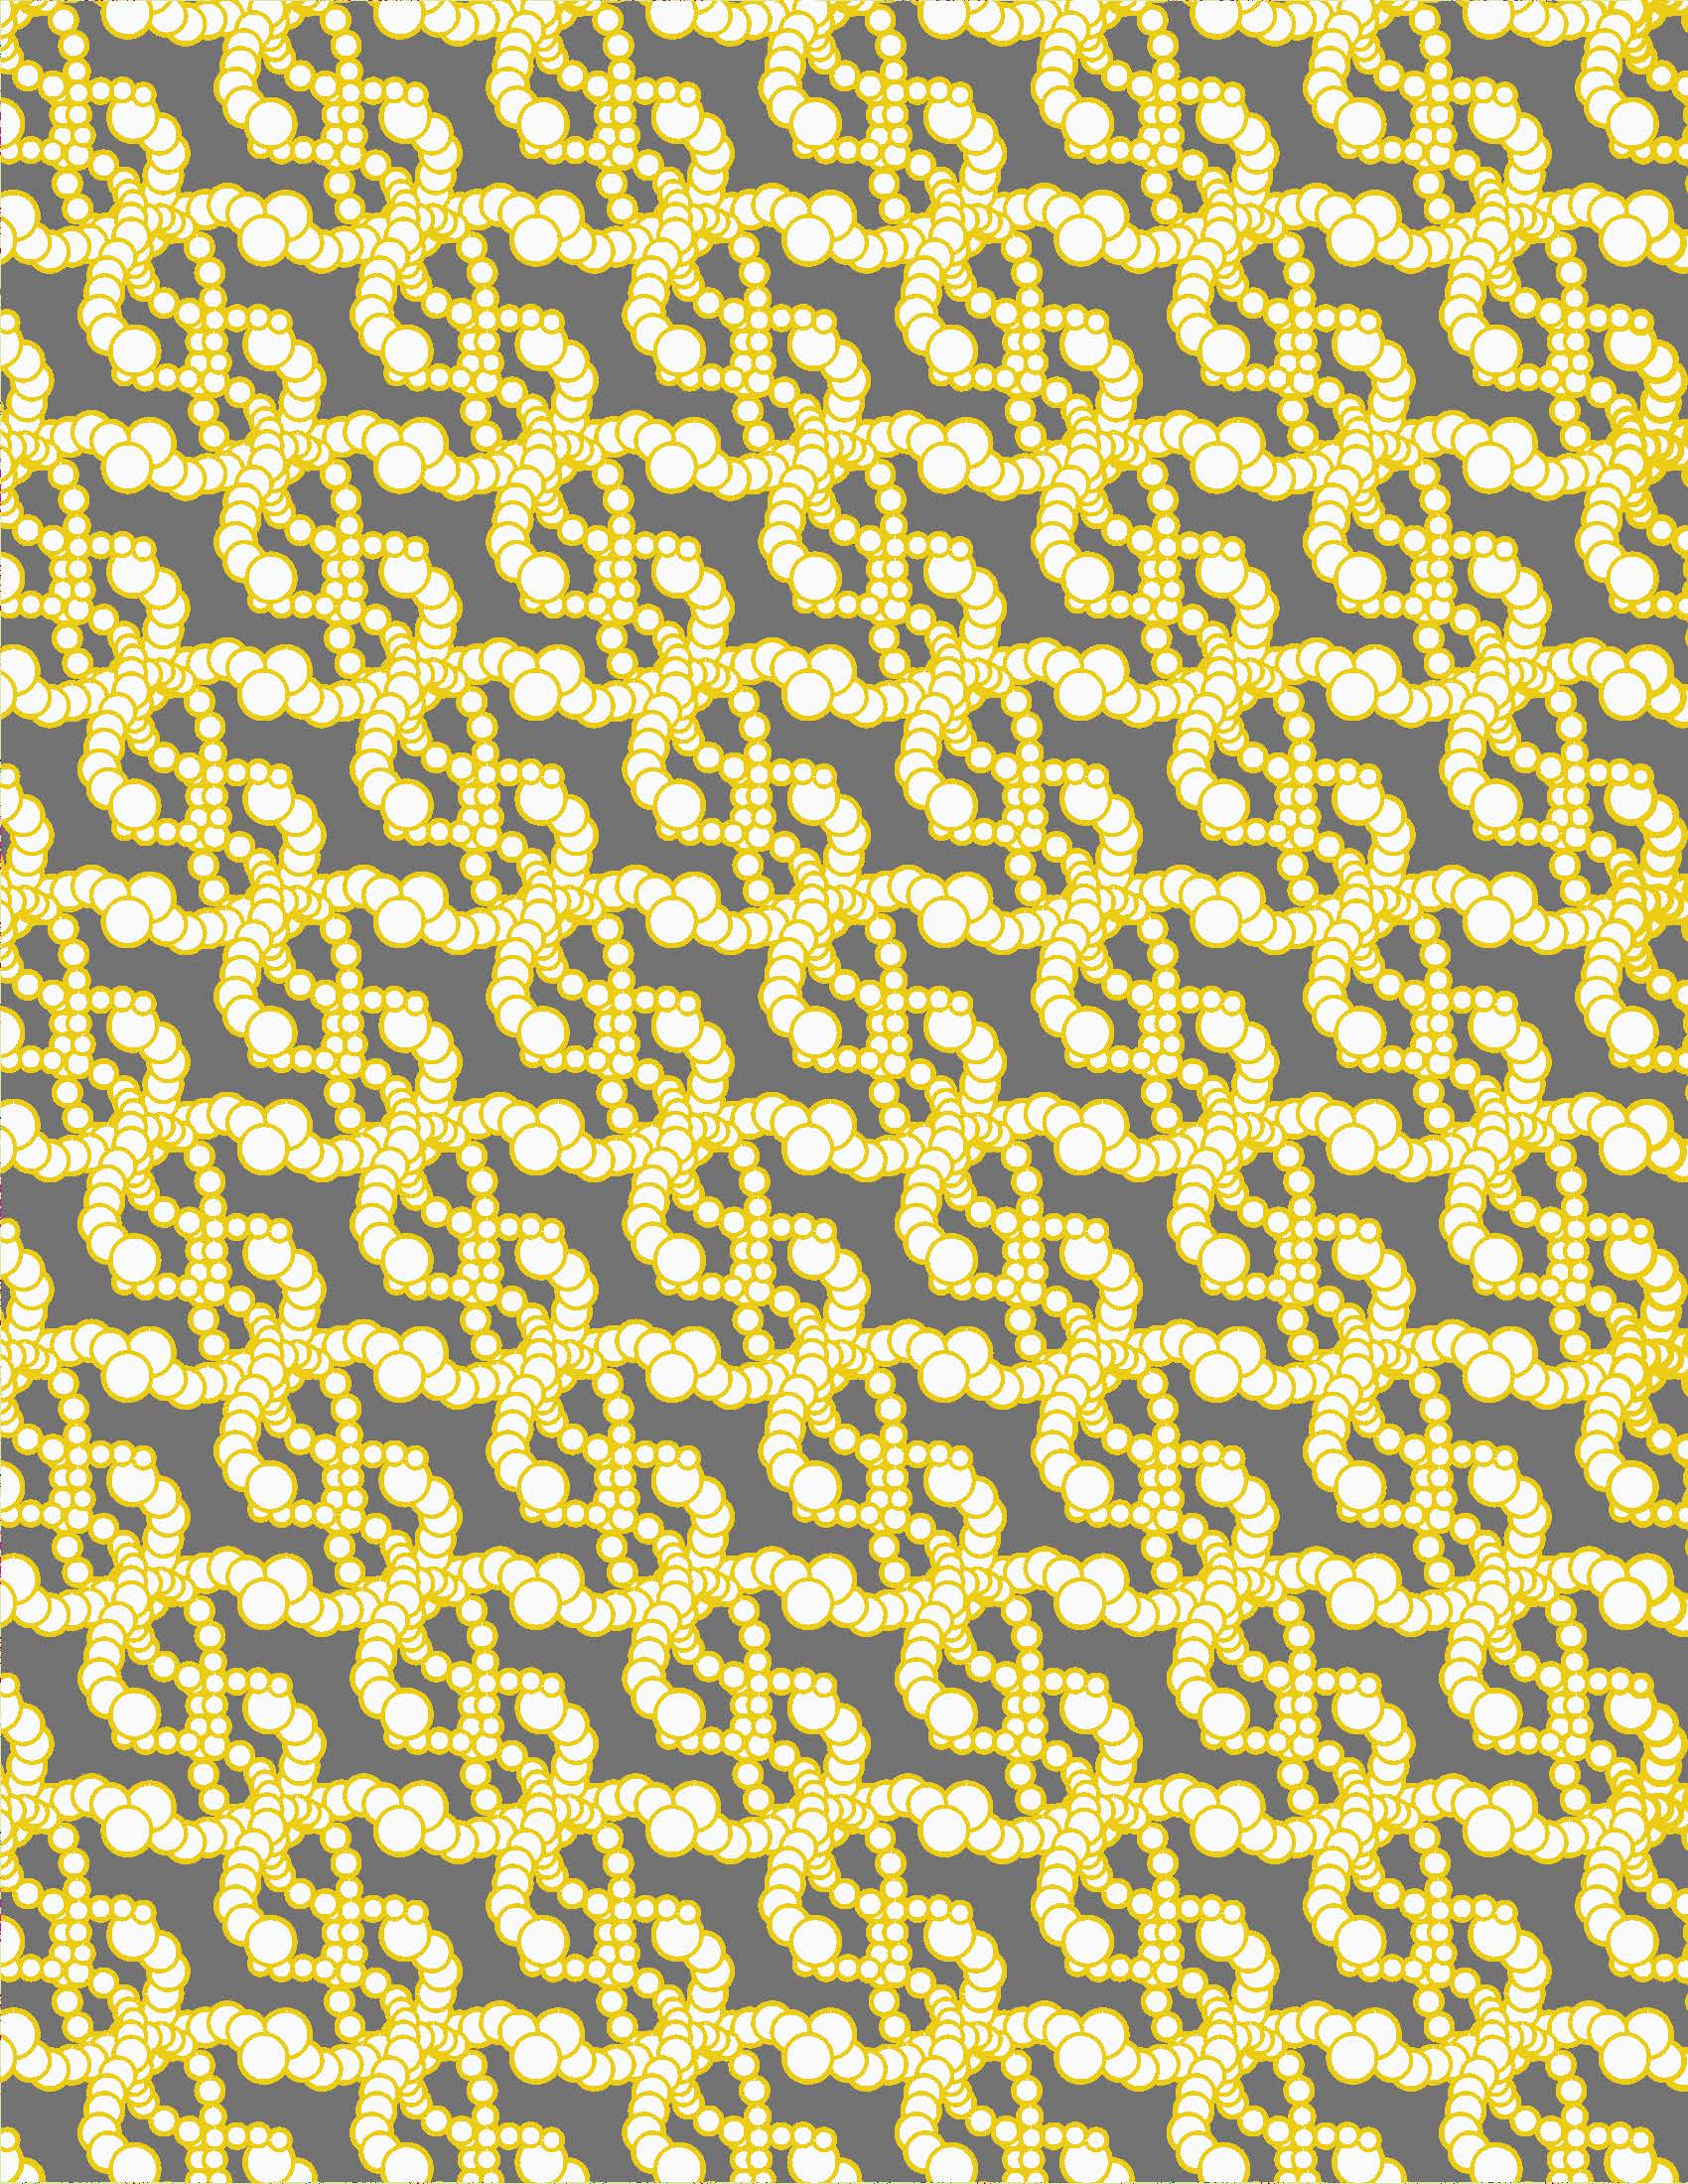 Color_Pattern_Page_3.jpg